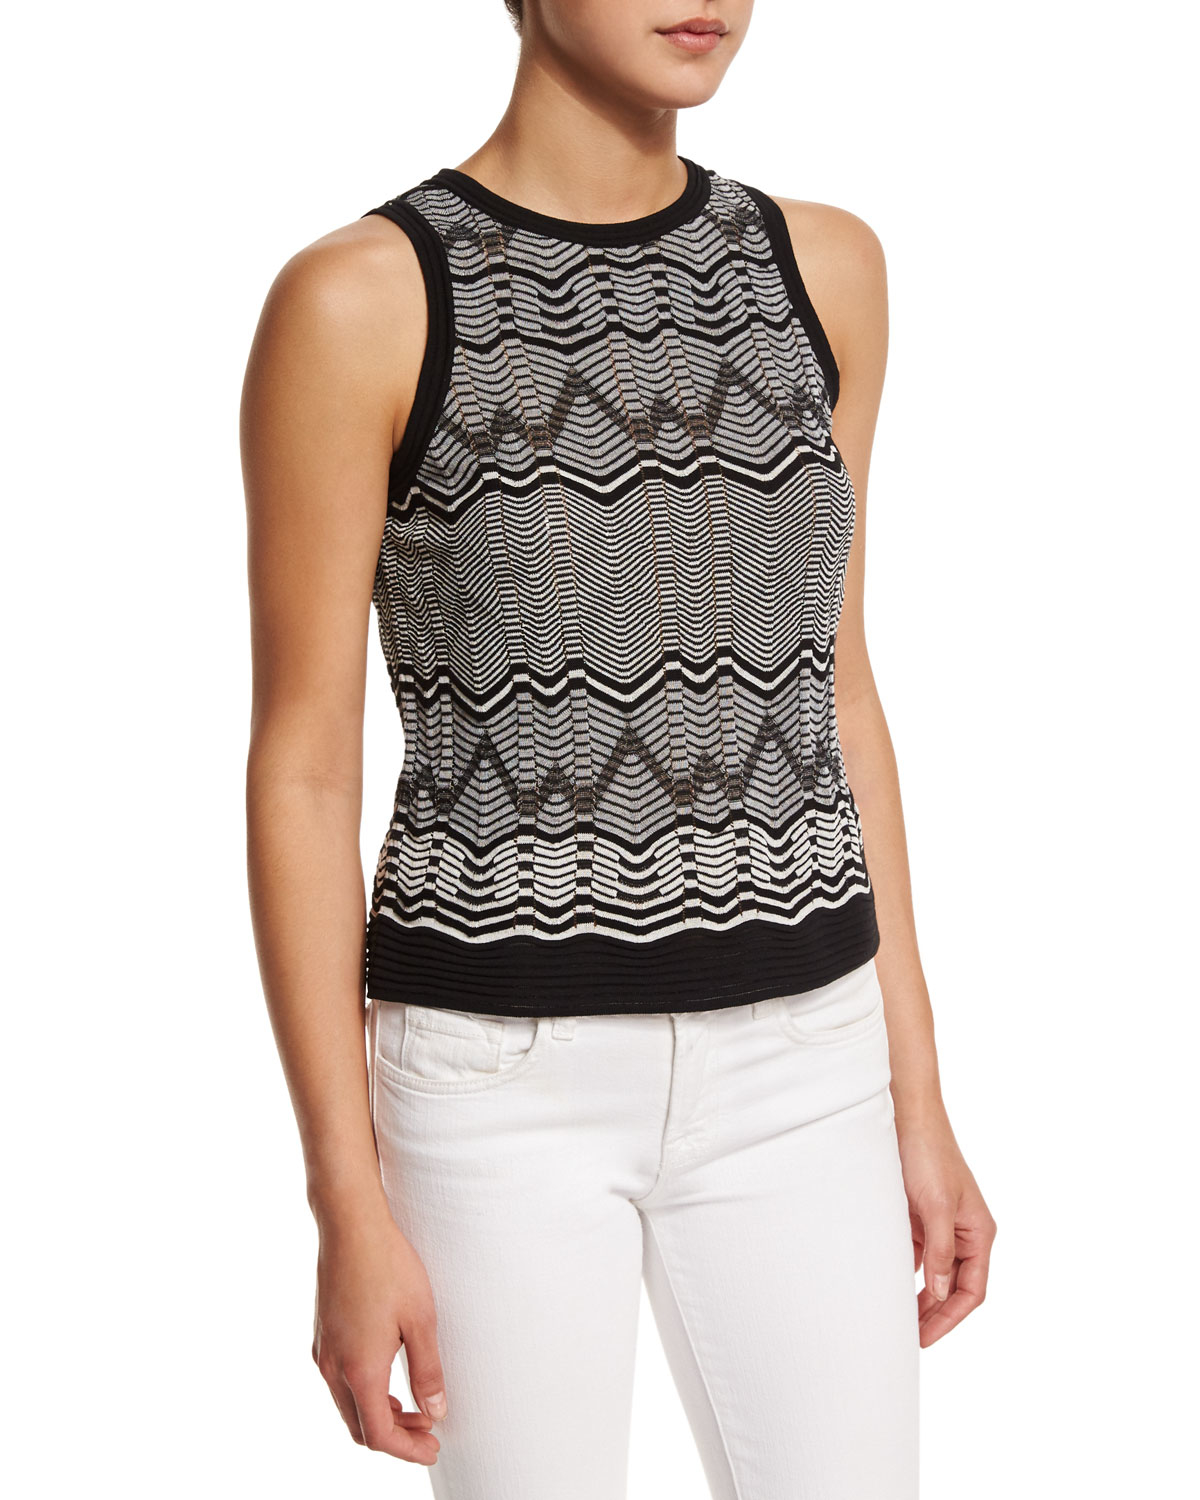 Clearance Very Cheap Huge Surprise Sale Online Missoni Tiered Sleeveless Top ZE1fy9XD